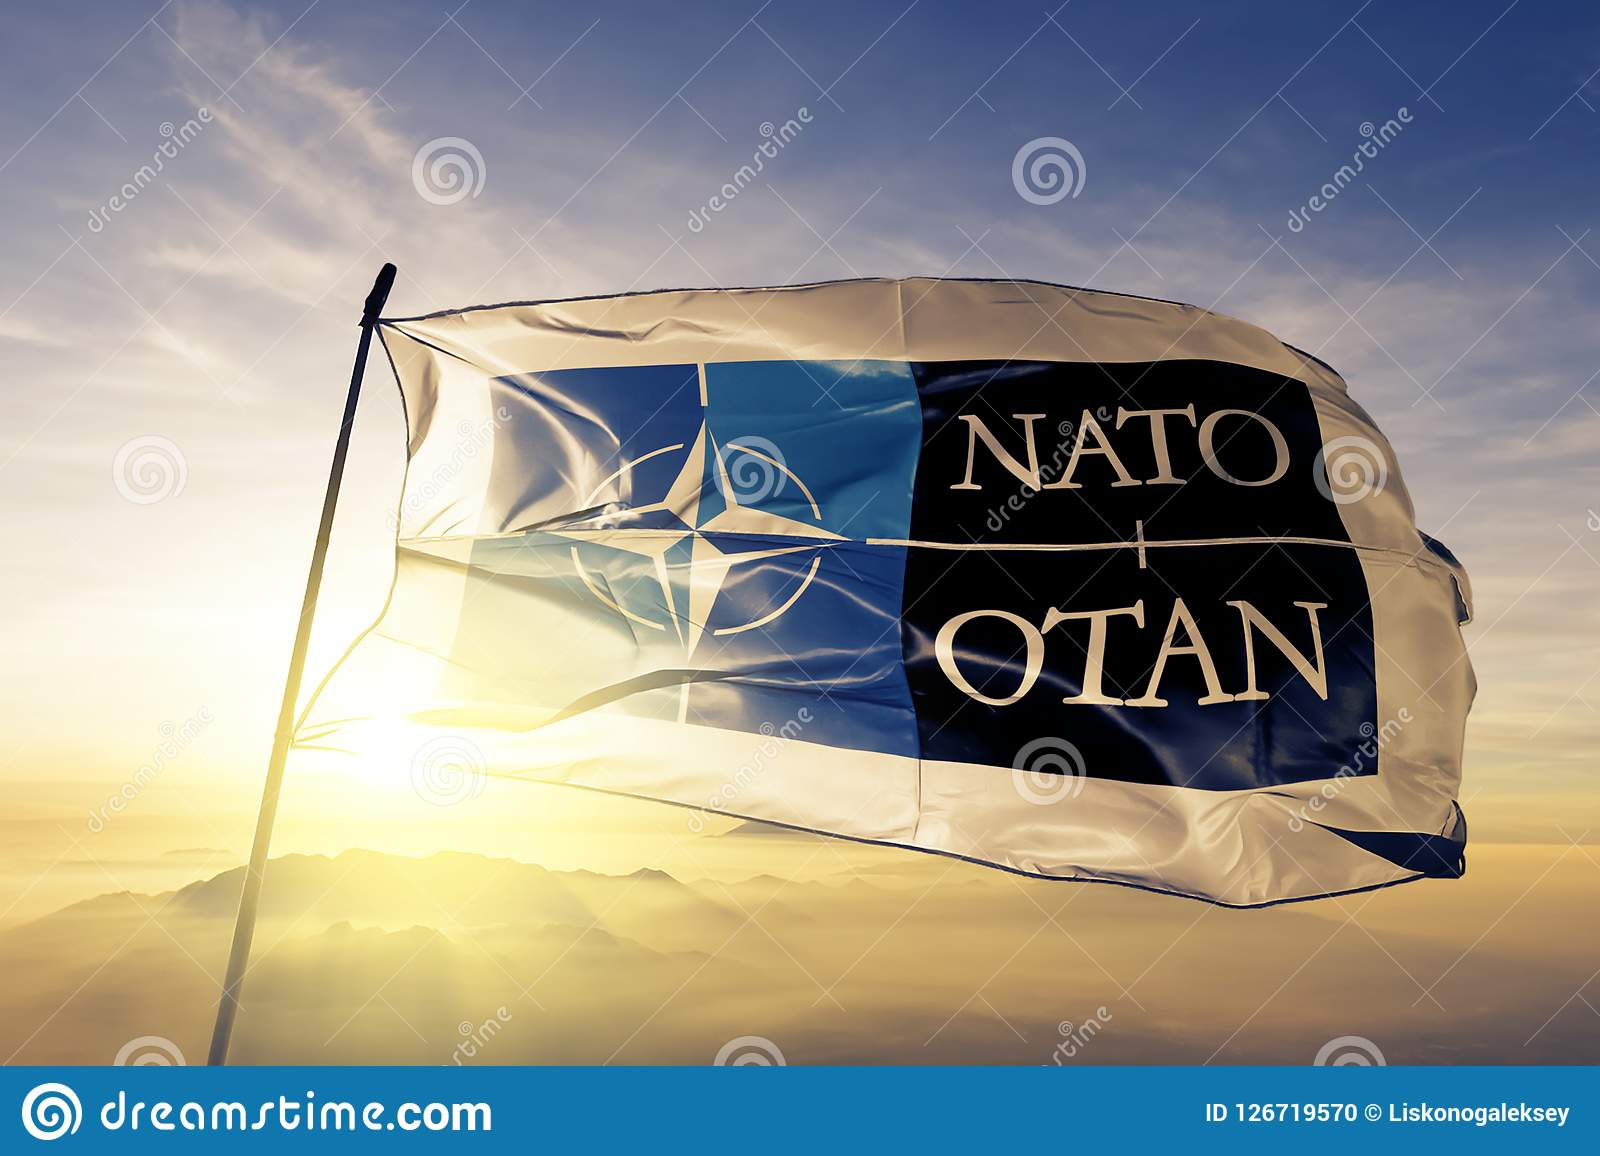 North Atlantic Treaty Organization NATO OTAN logo. flag textile cloth fabric waving on the top sunrise mist fog